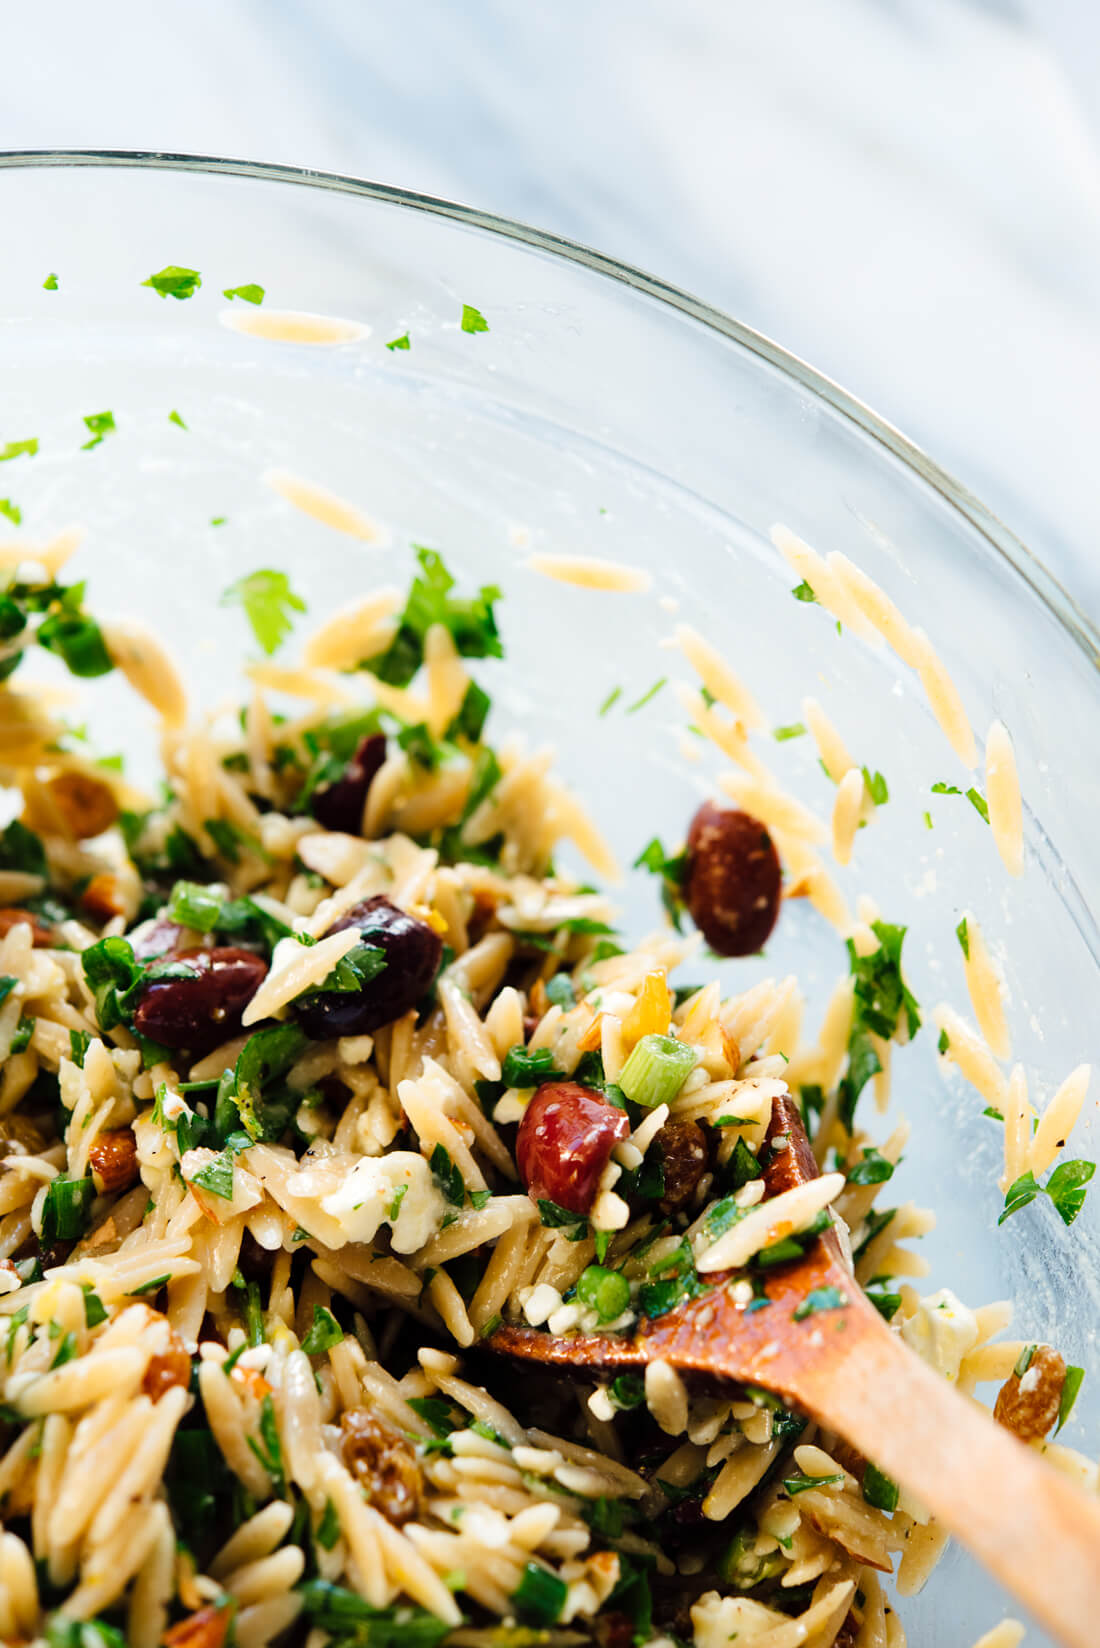 orzo salad recipe close-up